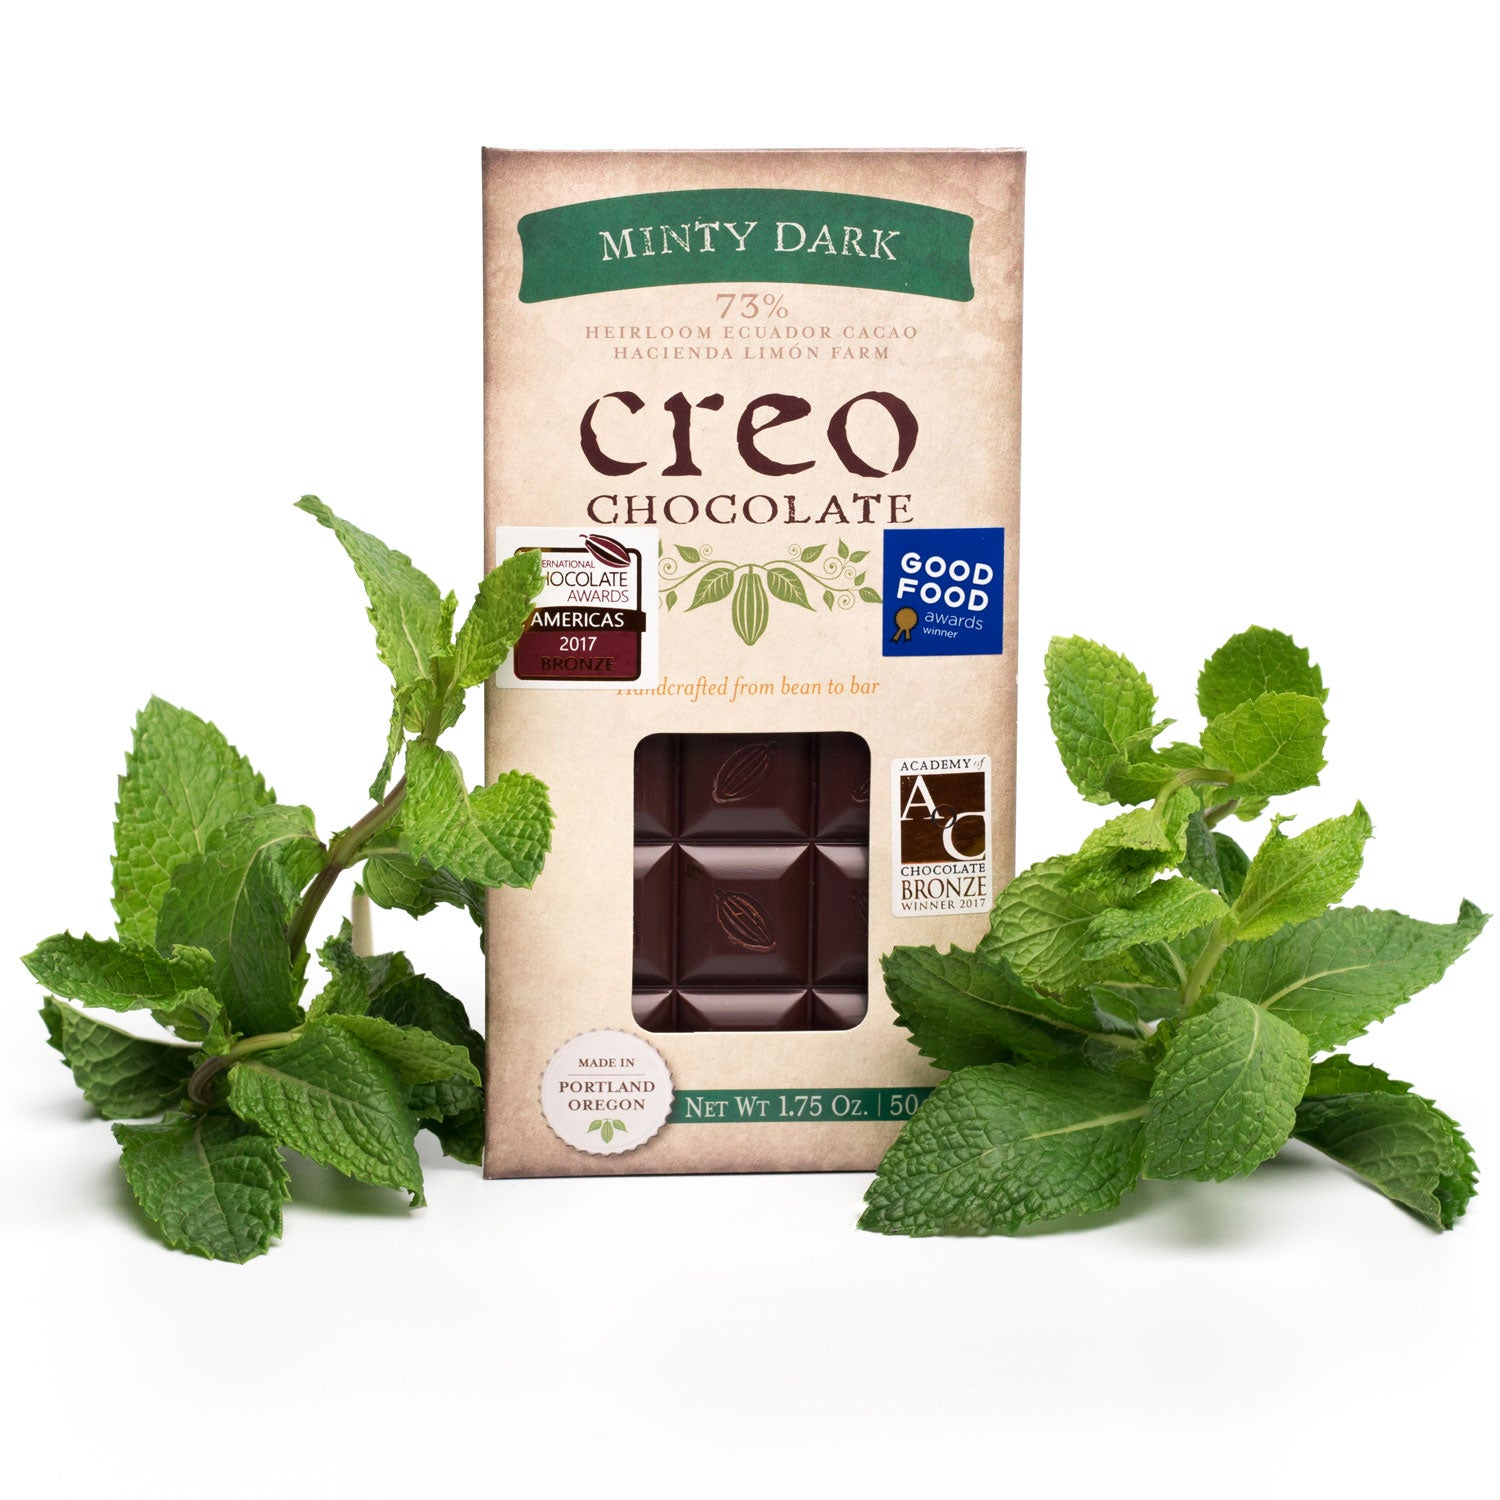 Minty Dark Chocolate Bar 73% - Creo Chocolate